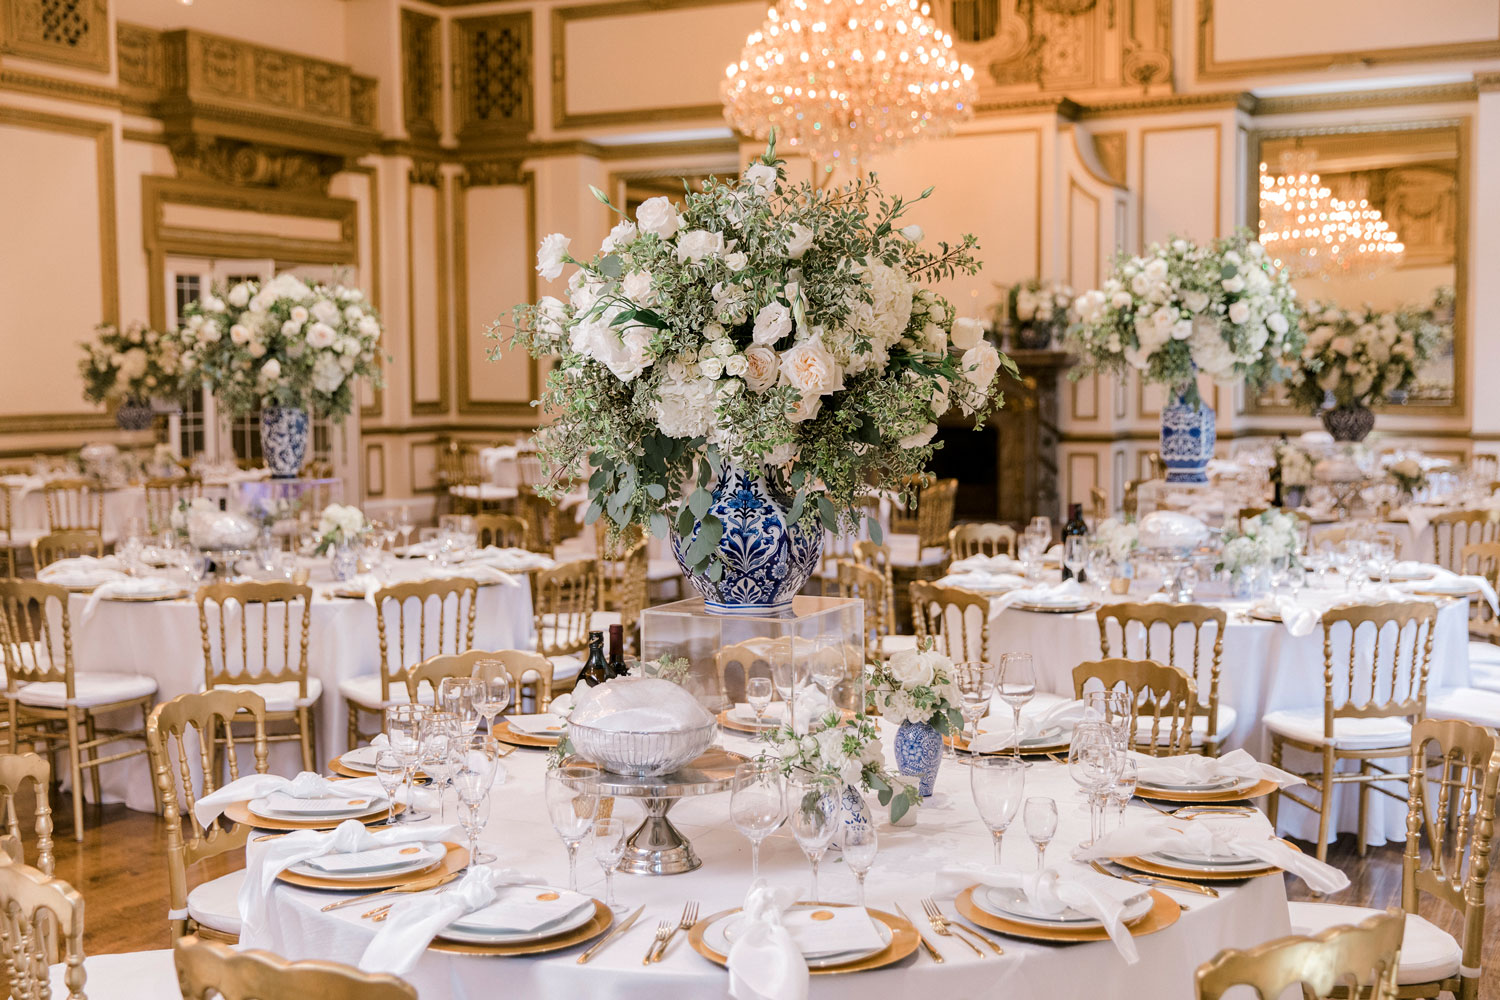 blue and white wedding ideas ginger jar centerpieces chinoiserie wedding ideas